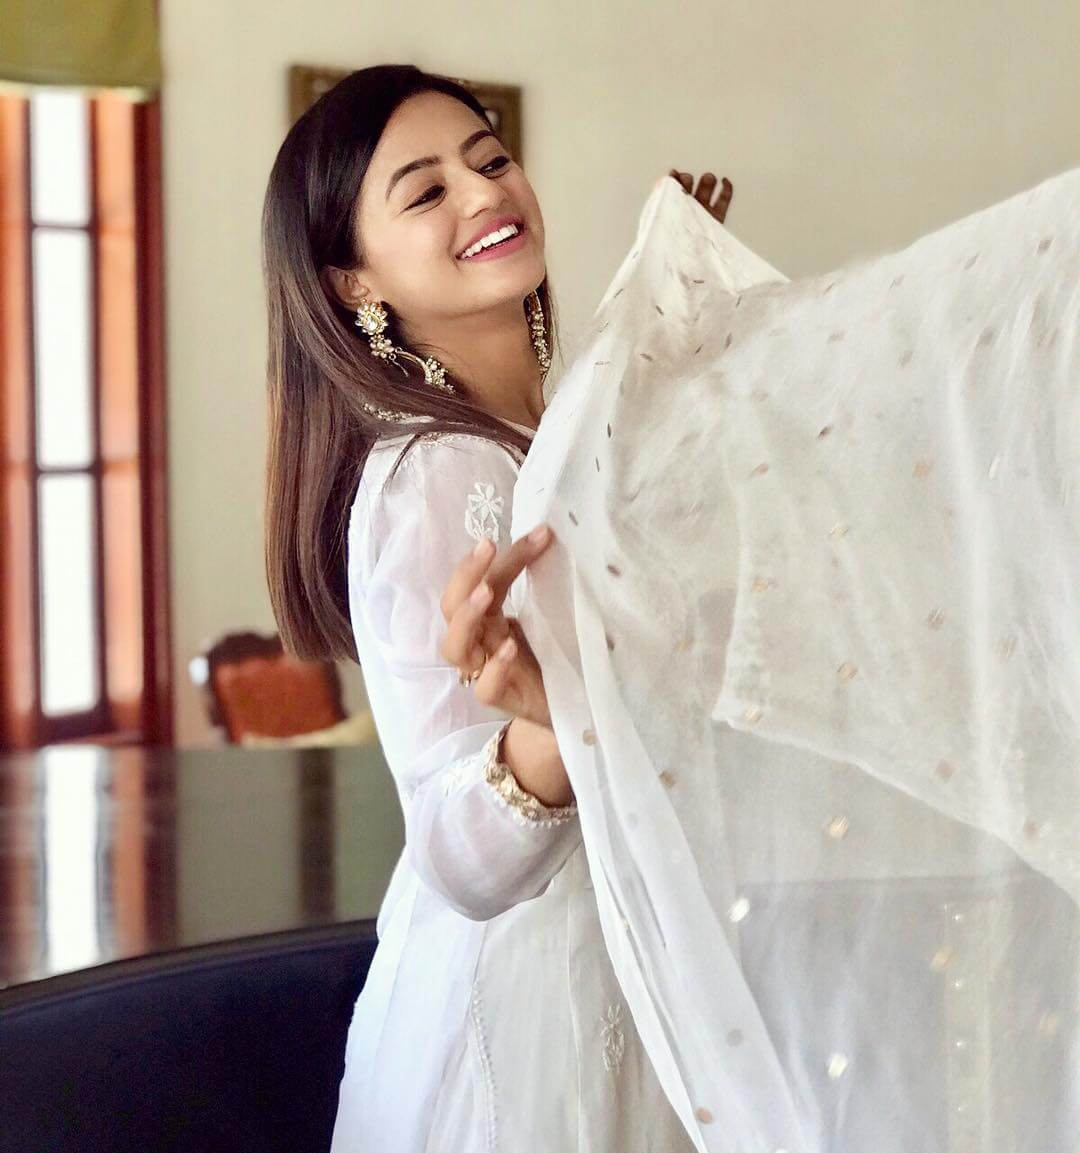 Helly Shah Age, Photos, Biography, Religion, Awards, Family, Height, Birthday, Boyfriend, Net Worth, Education, Instagram, Twitter, Facebook, Wiki, Imdb (21)